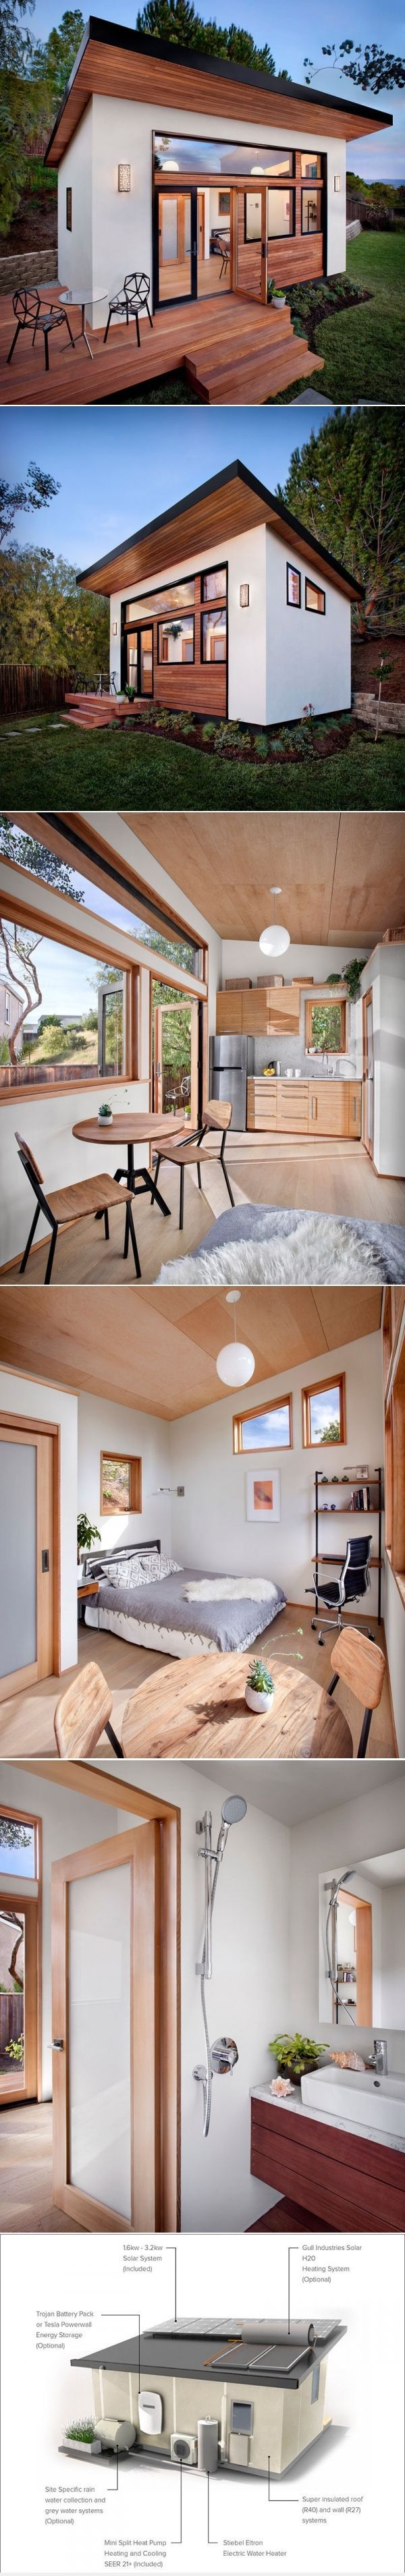 this small backyard guest house is big on ideas for pact living